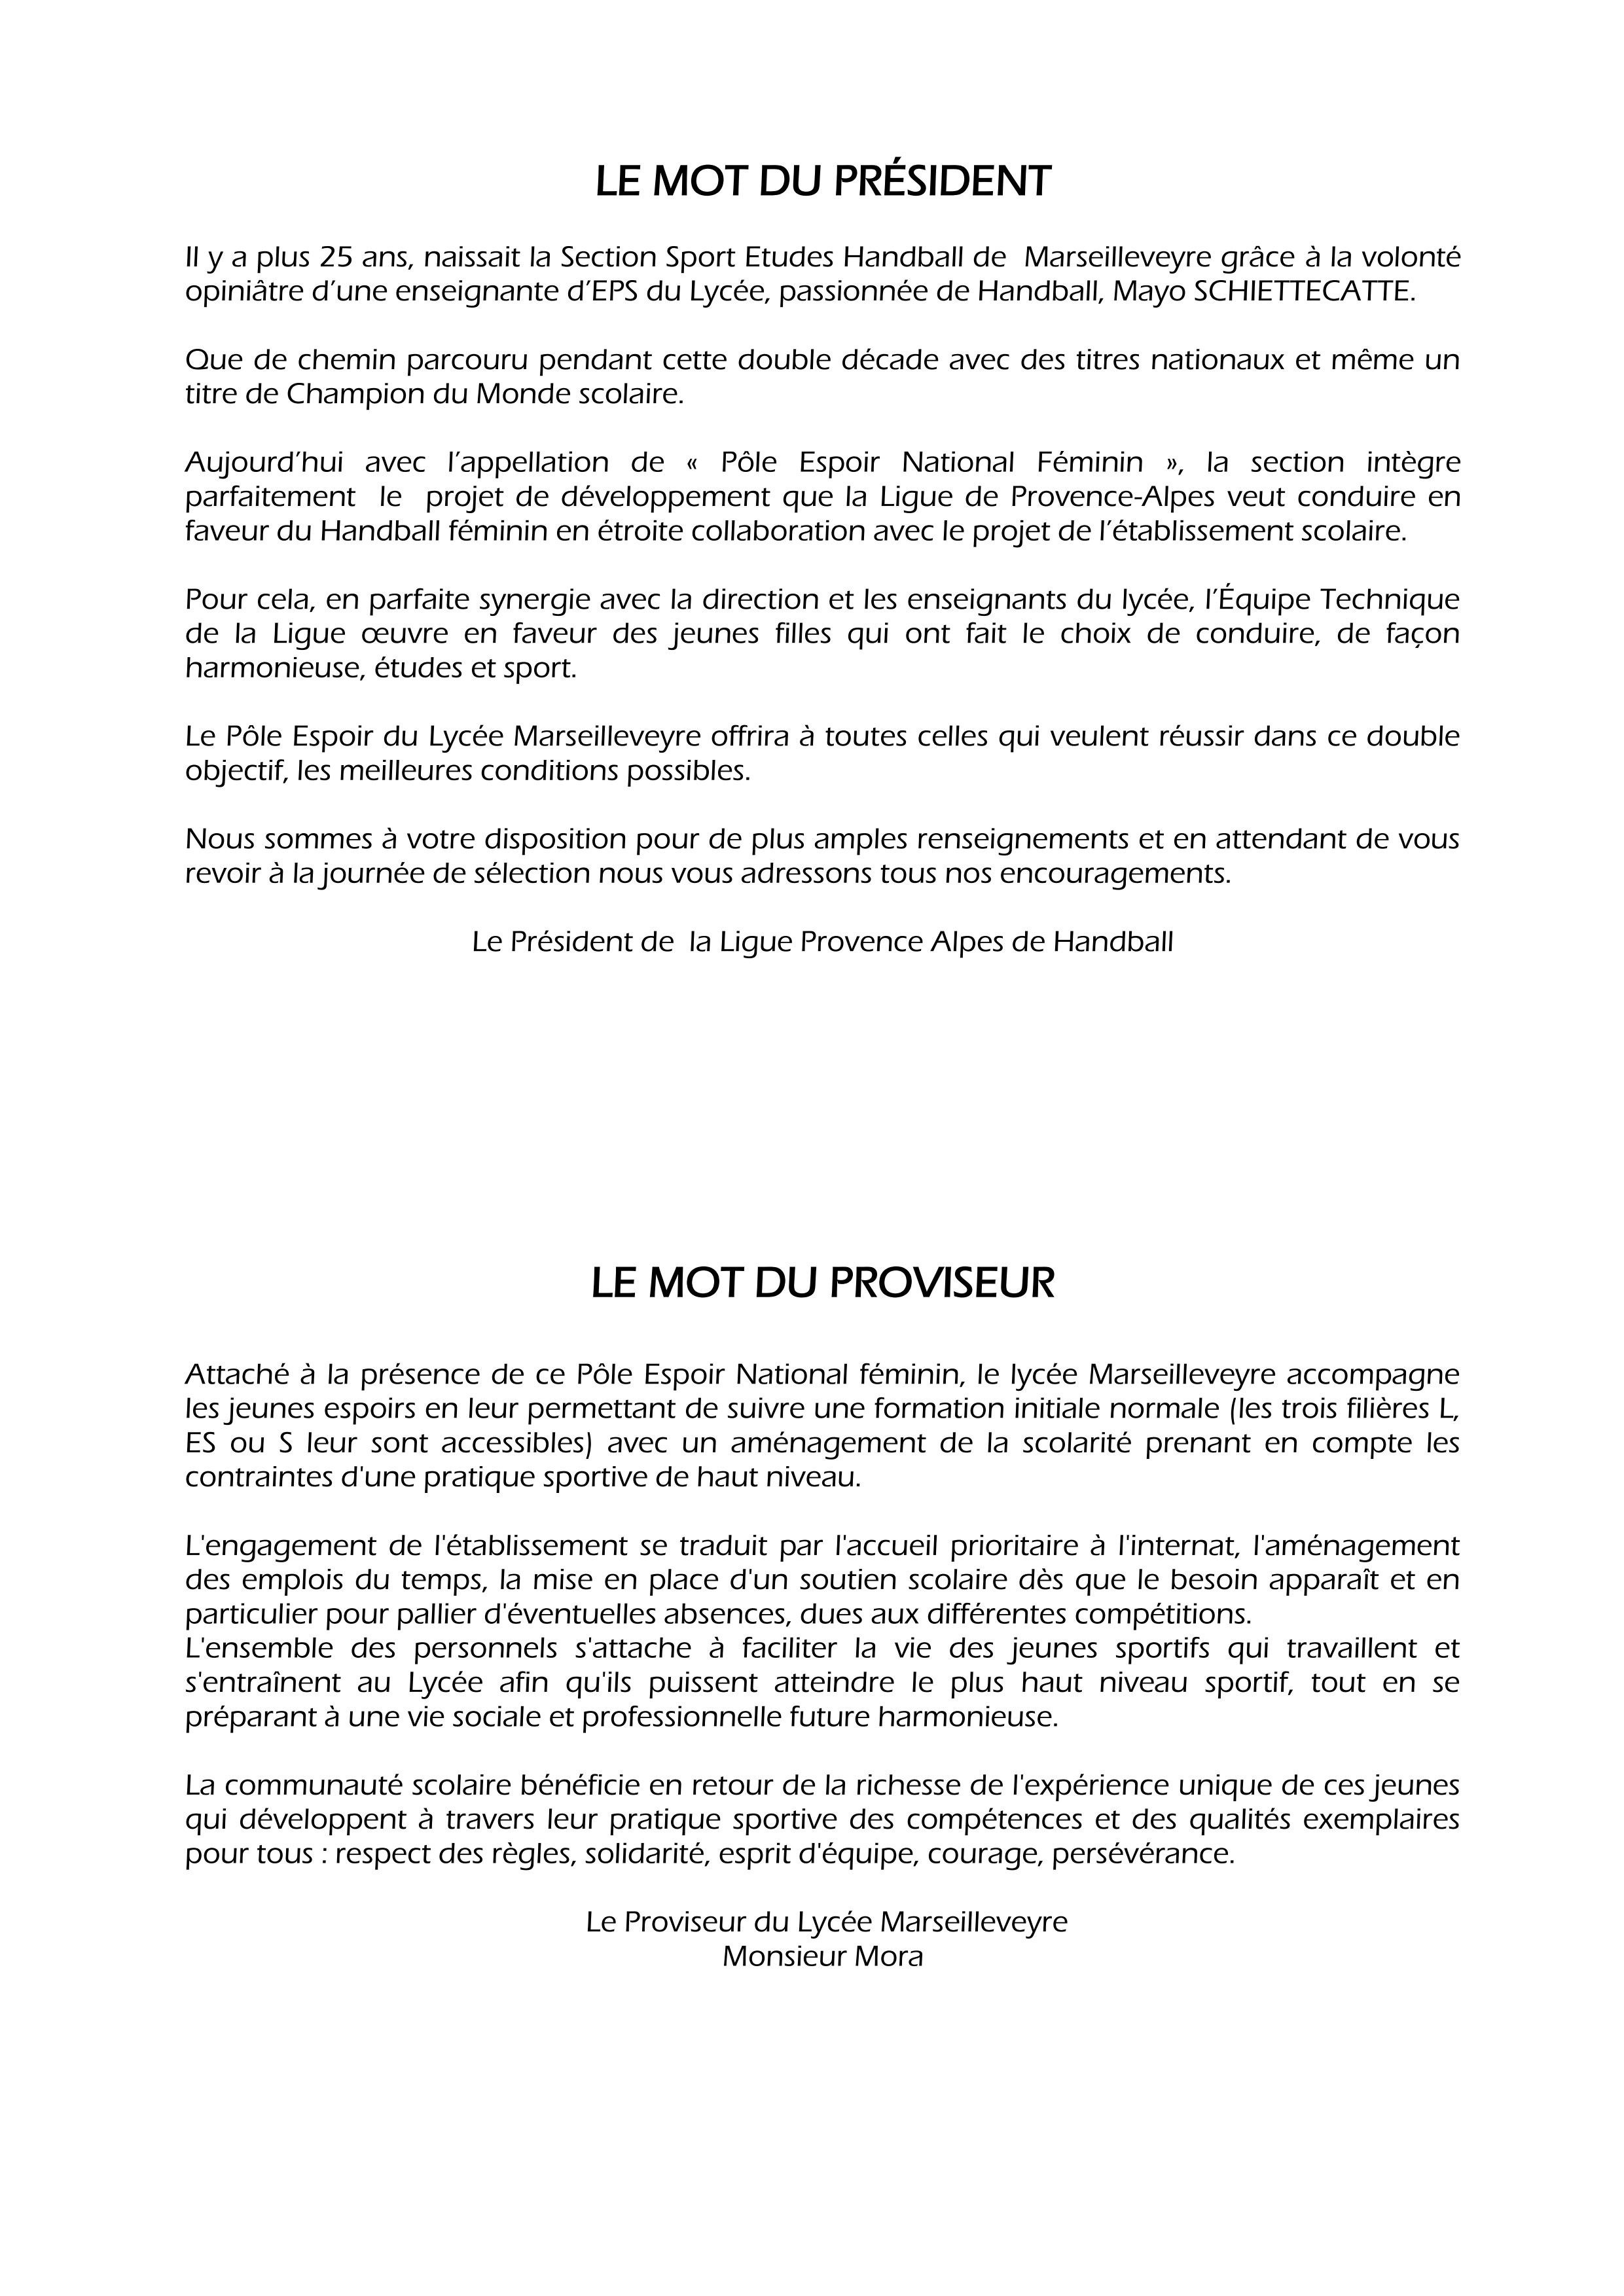 lettre de motivation sport  u00e9tude handball